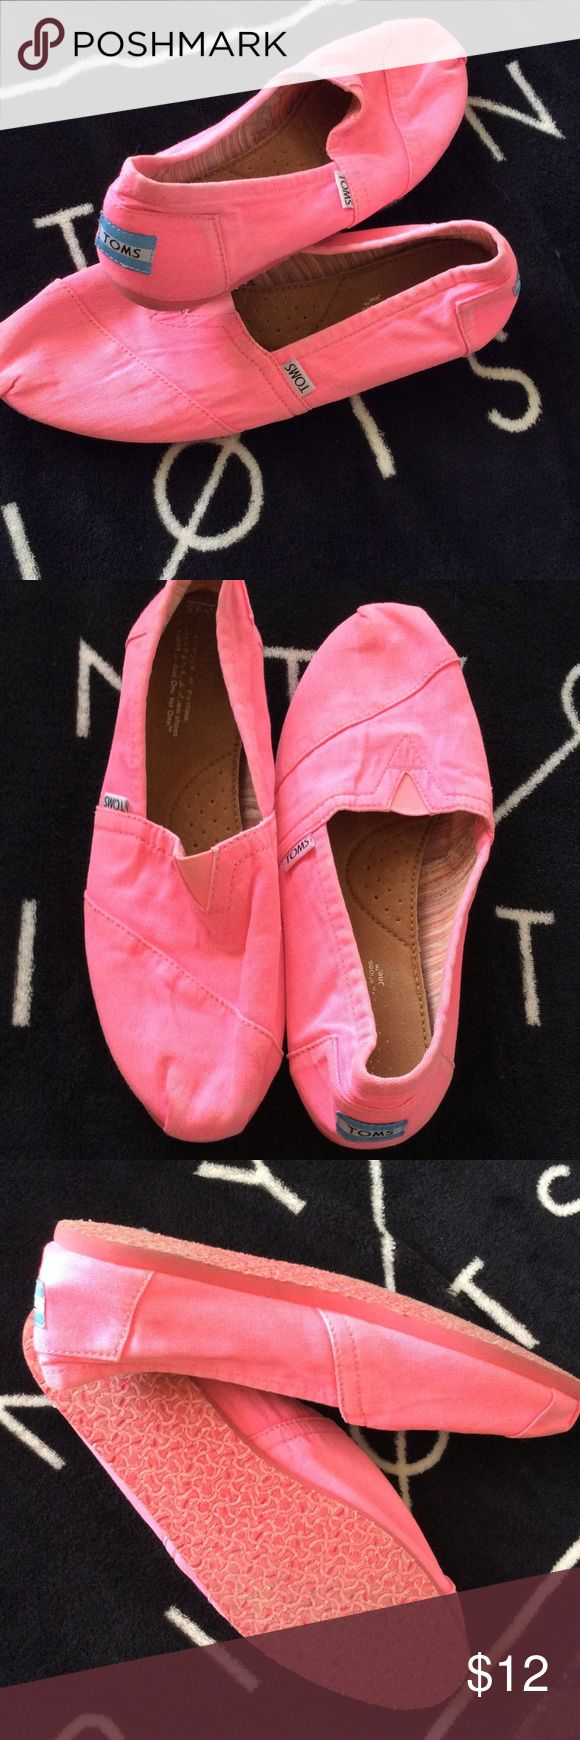 TOMS 9.5 shoes Neon pink TOMS size 9.5 great condition a little dusty from storage. Factory distressed look, not dirty. Hardly worn. TOMS Shoes Flats & Loafers